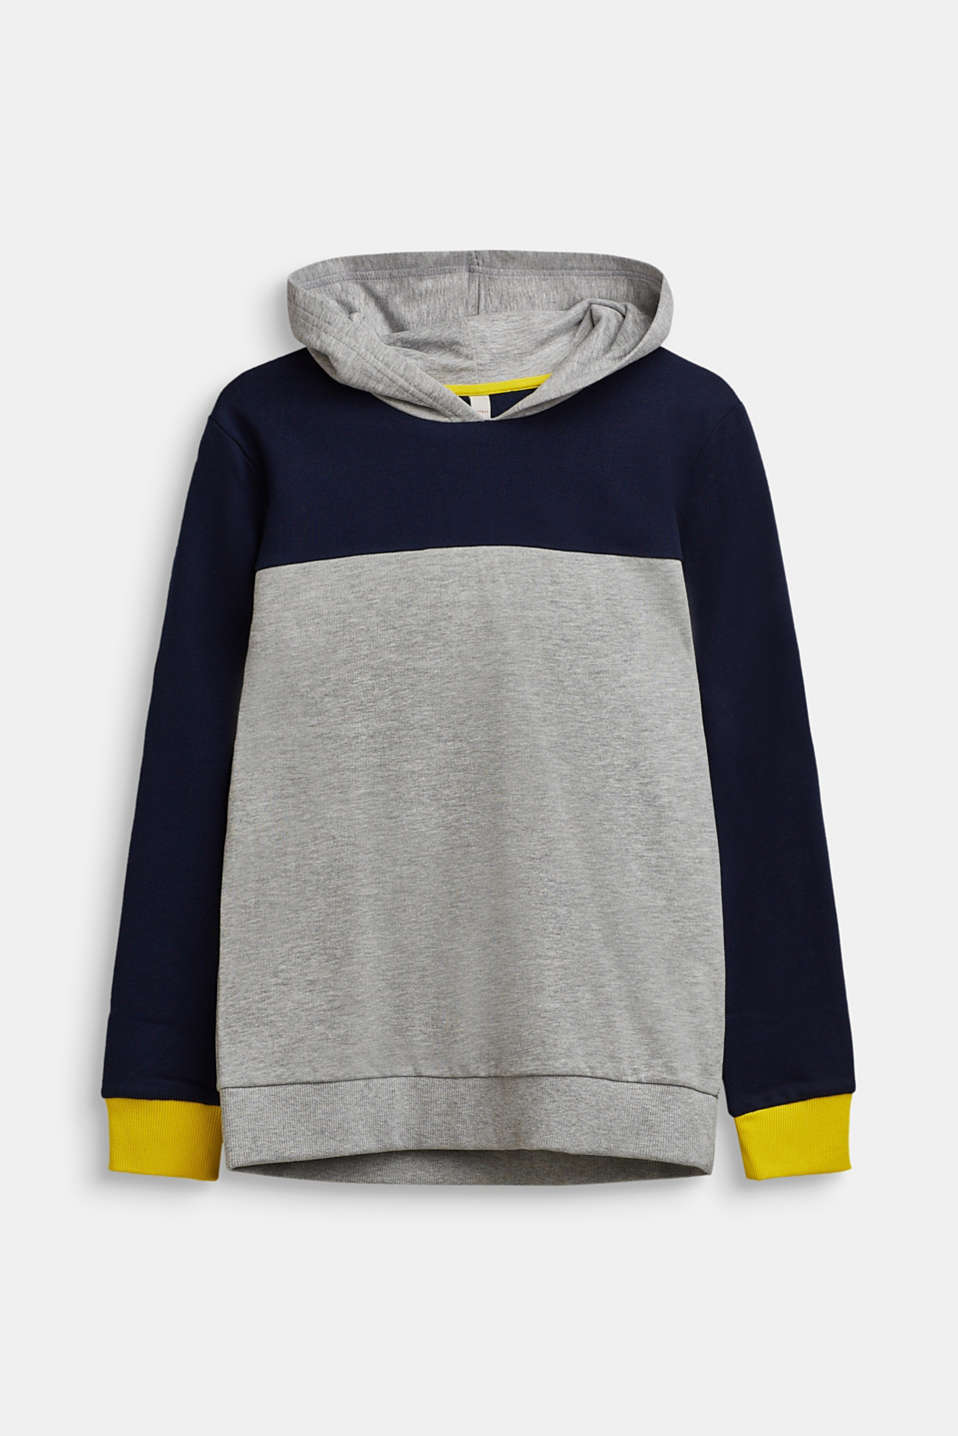 Esprit - Sweatshirt hoodie with a statement print